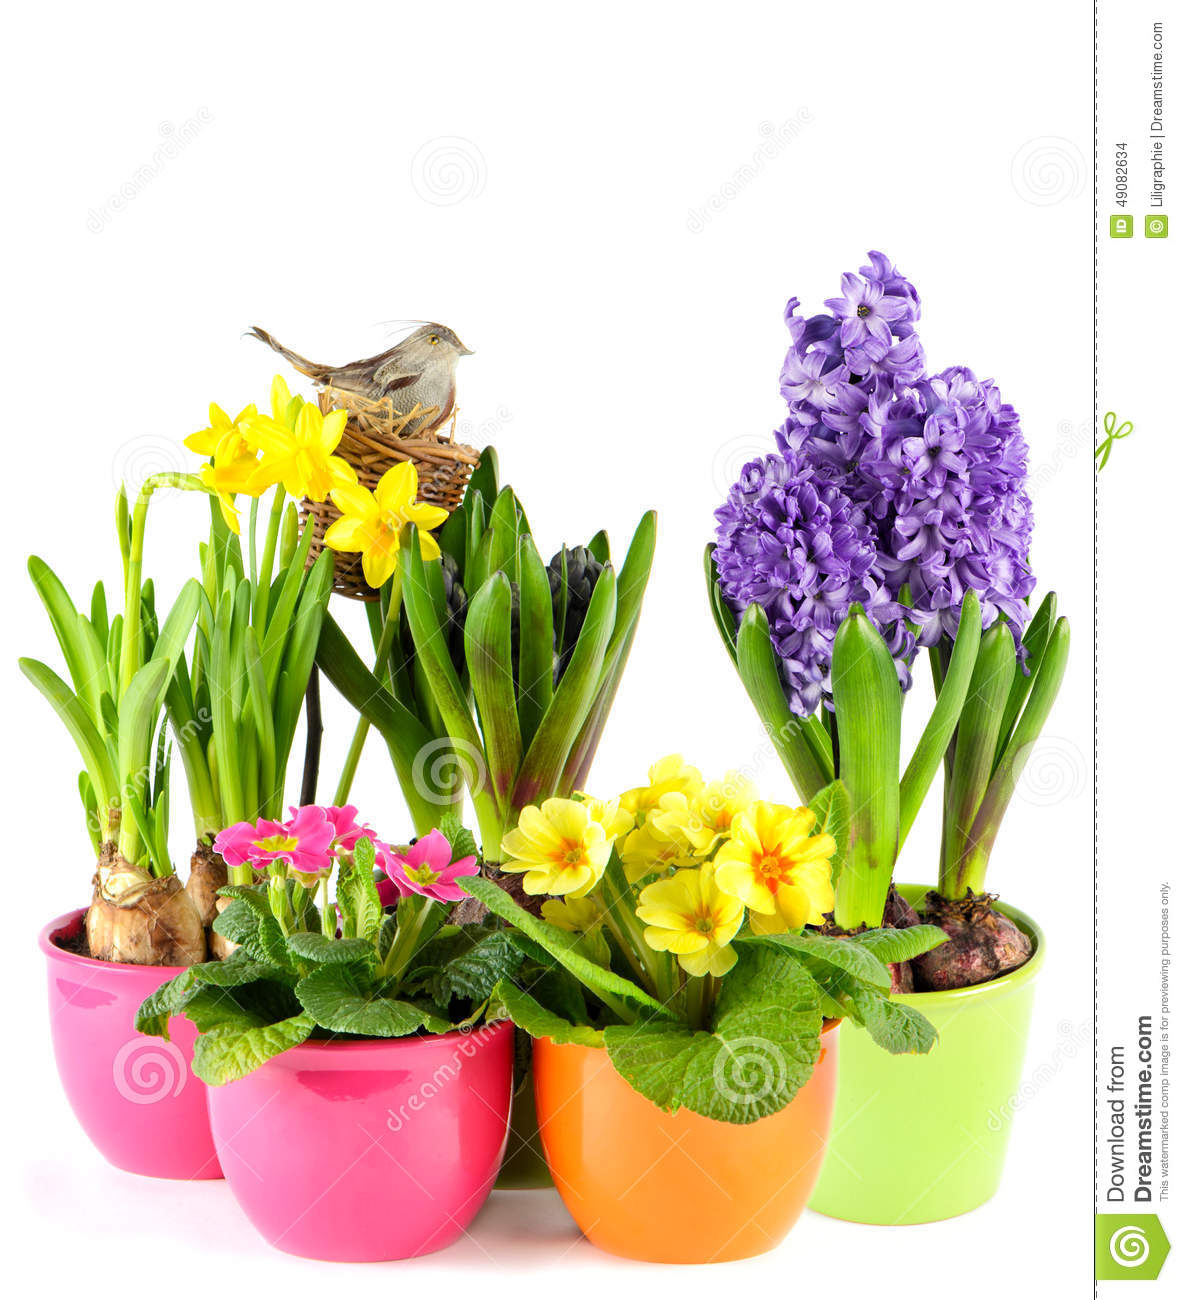 Spring Flowers With Birds Nest Colorful Easter Decoration Stock